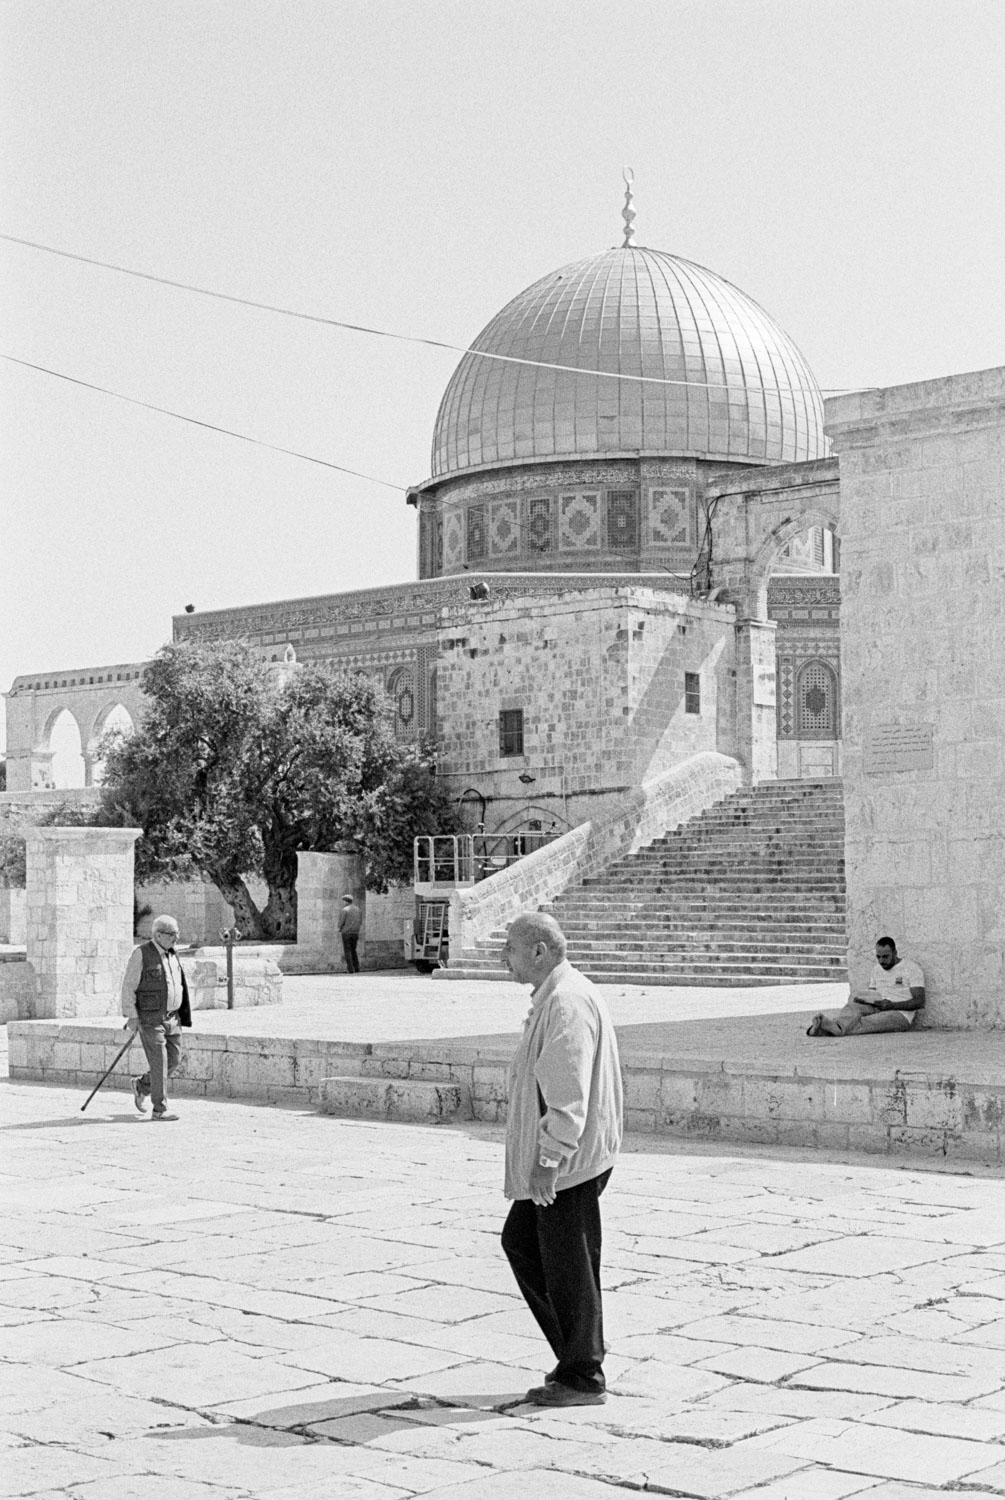 Dome of the Rock - Cristian Geelen